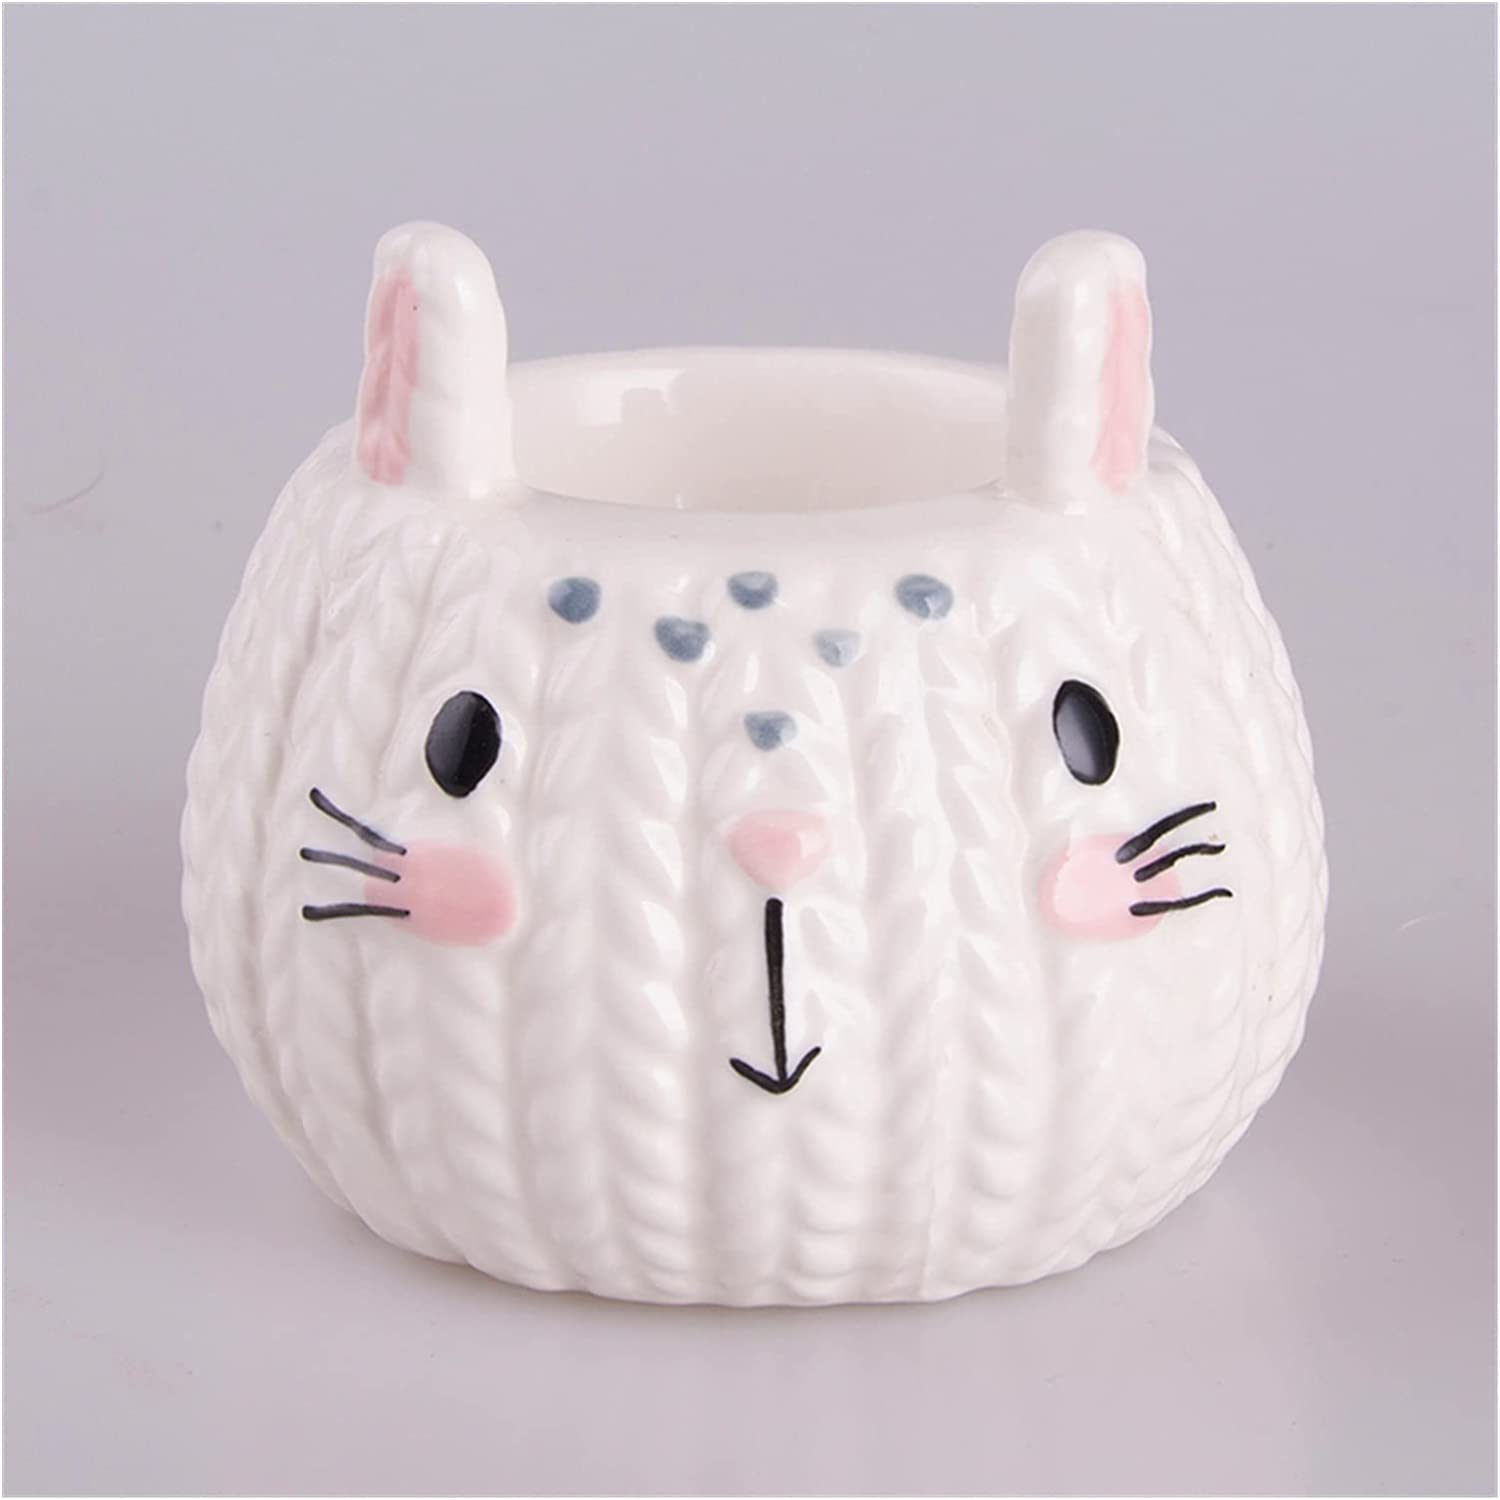 Egg cup Max 86% Special sale item OFF Ceramic Hand-painted Tray Small Child Cute Ornaments